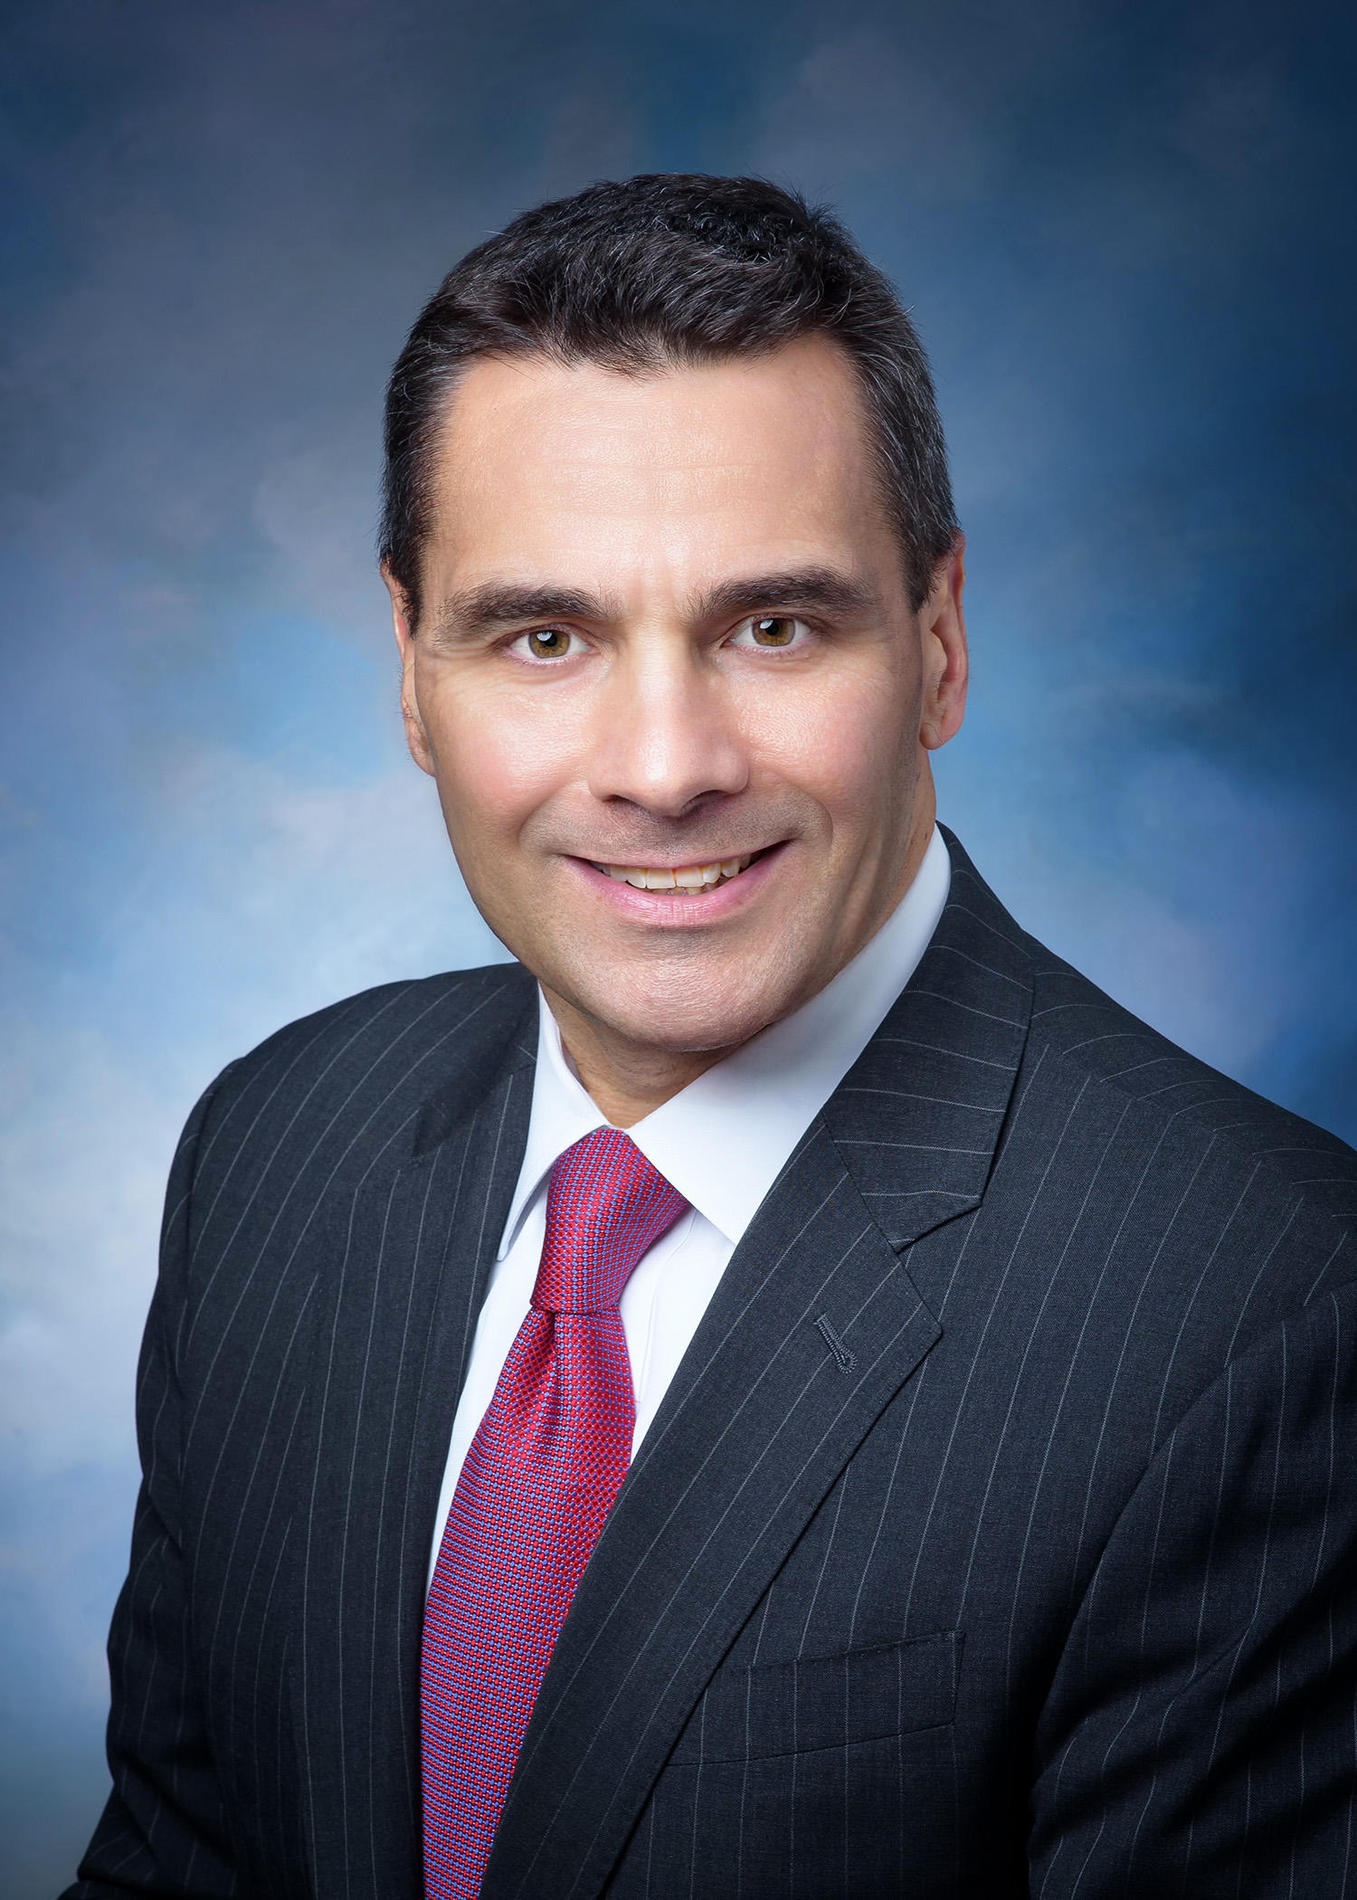 Photo of Keith Galanti - Morgan Stanley